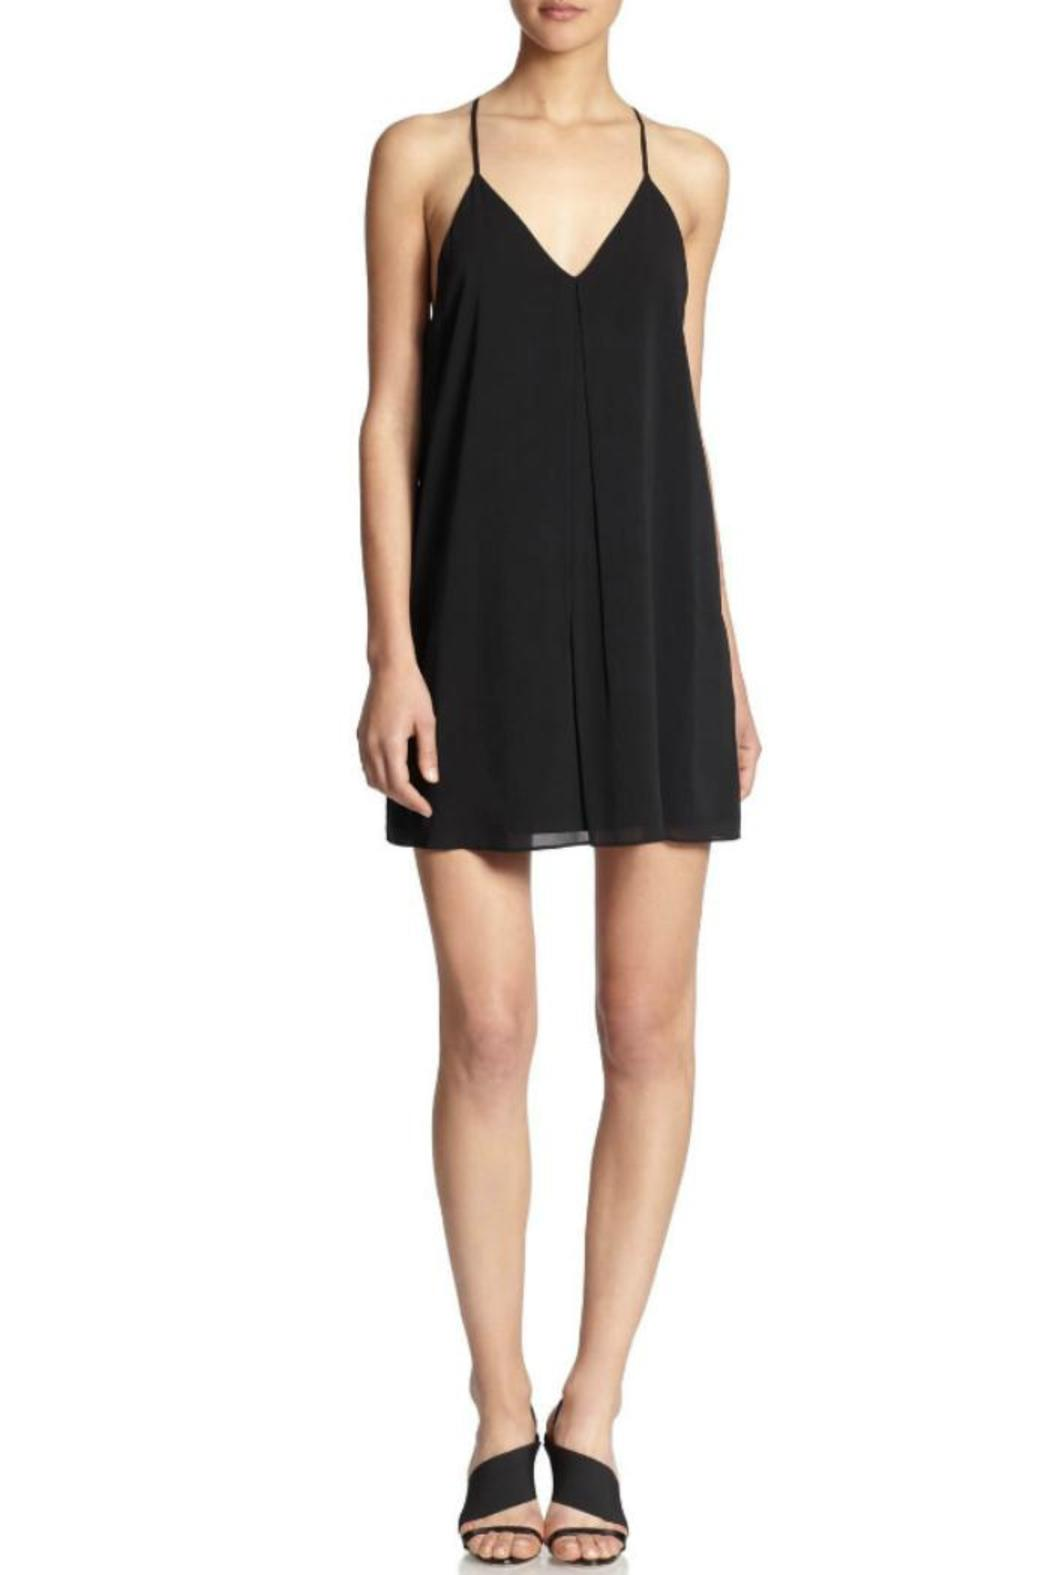 Alice + Olivia Fierra Dress Black - Main Image